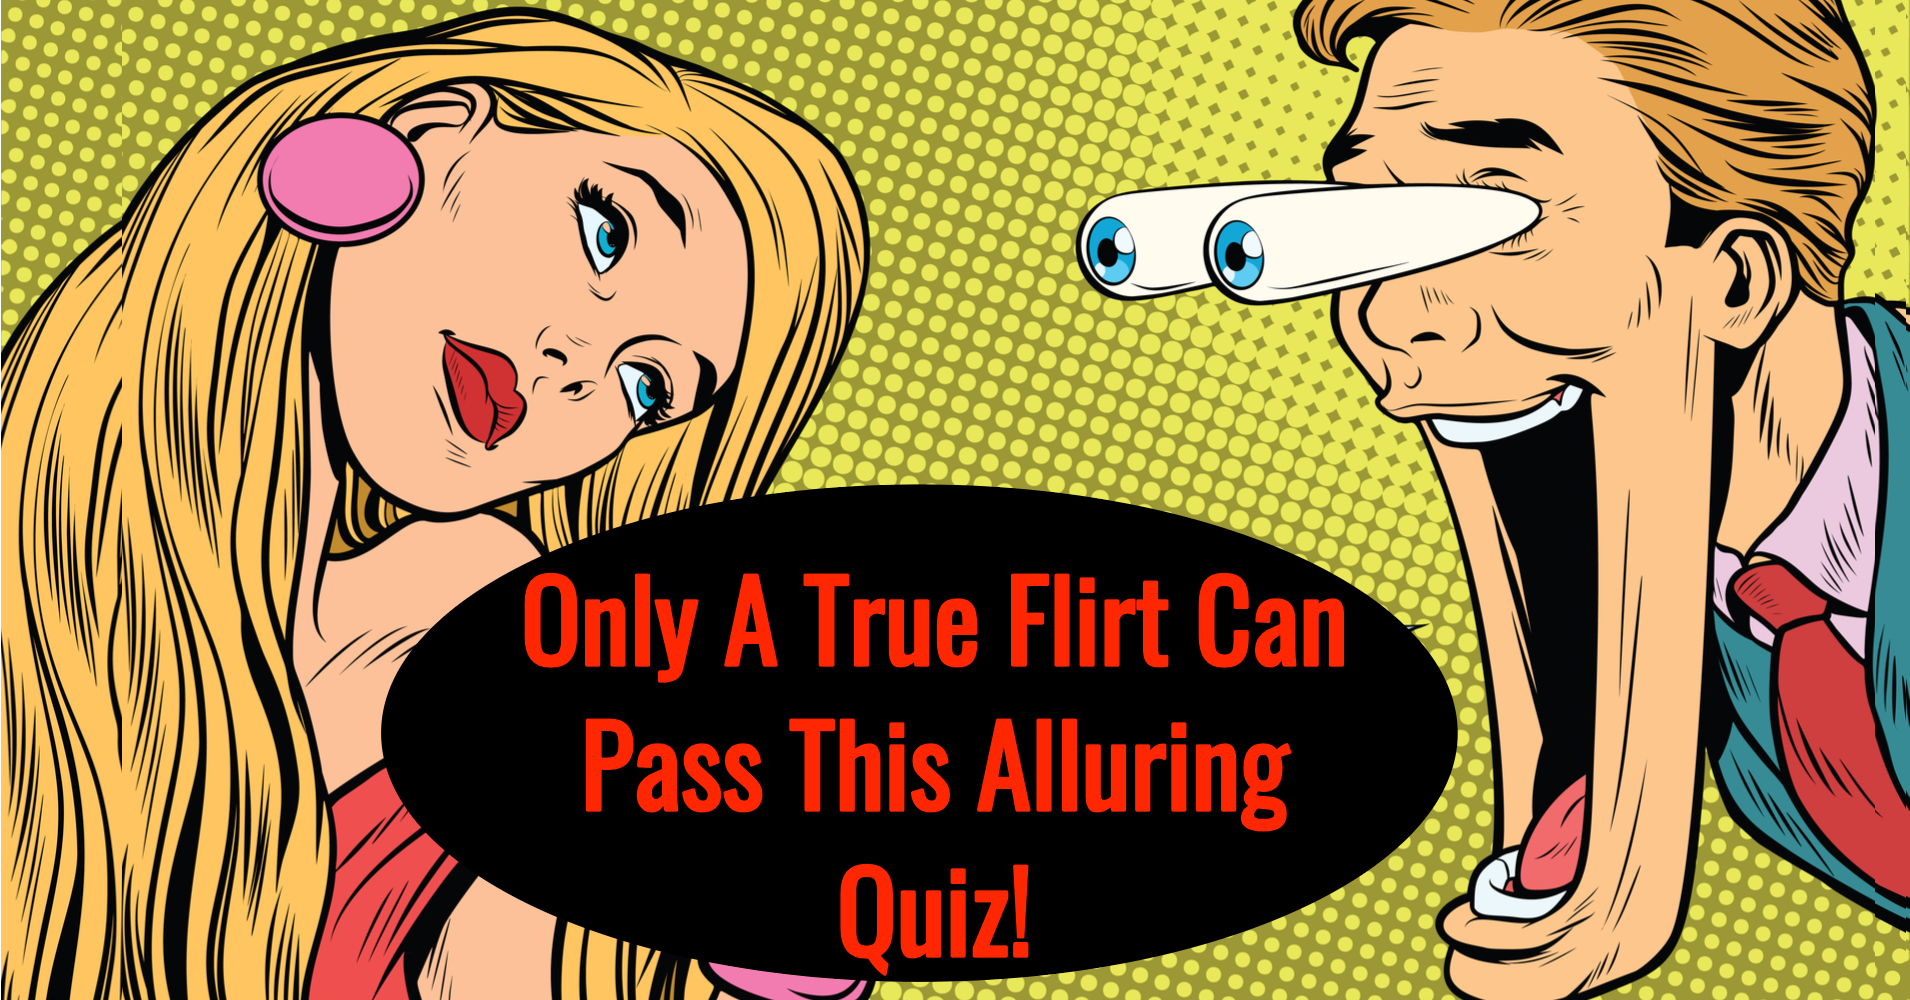 Can you flirt quiz